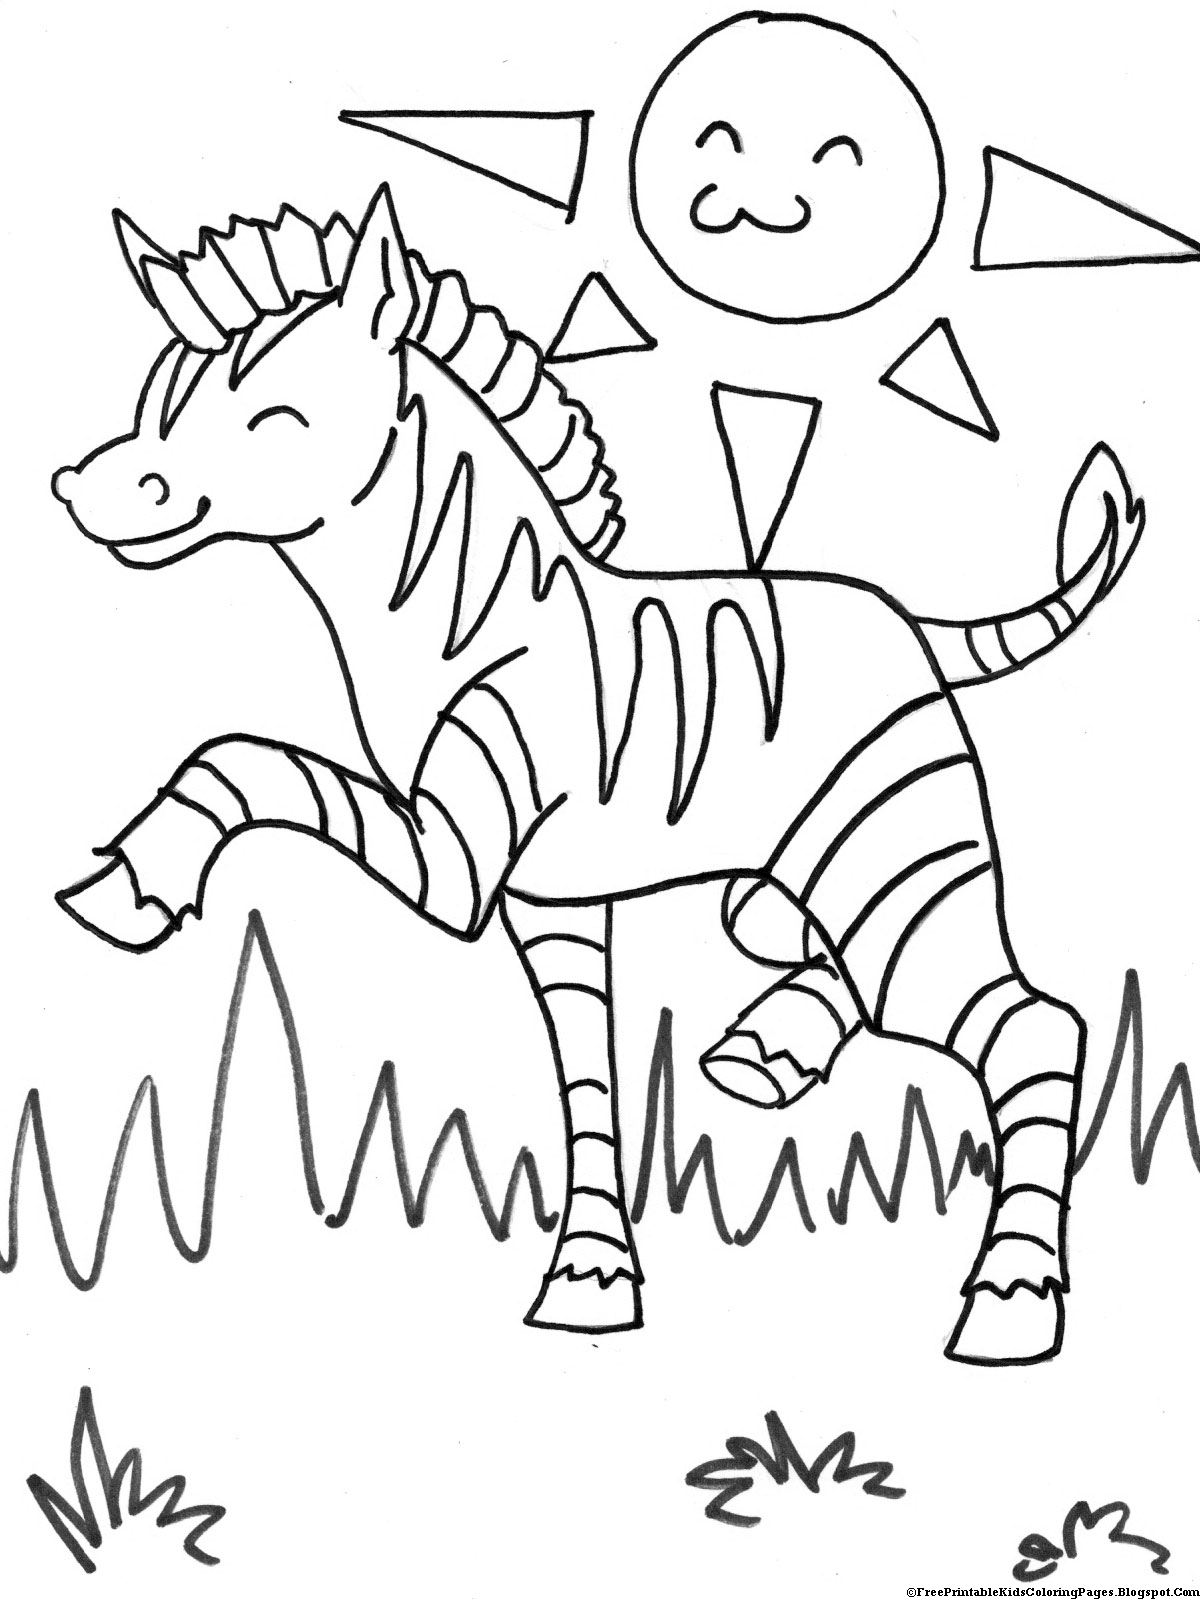 zebra coloring pages free printable kids coloring pages. Black Bedroom Furniture Sets. Home Design Ideas